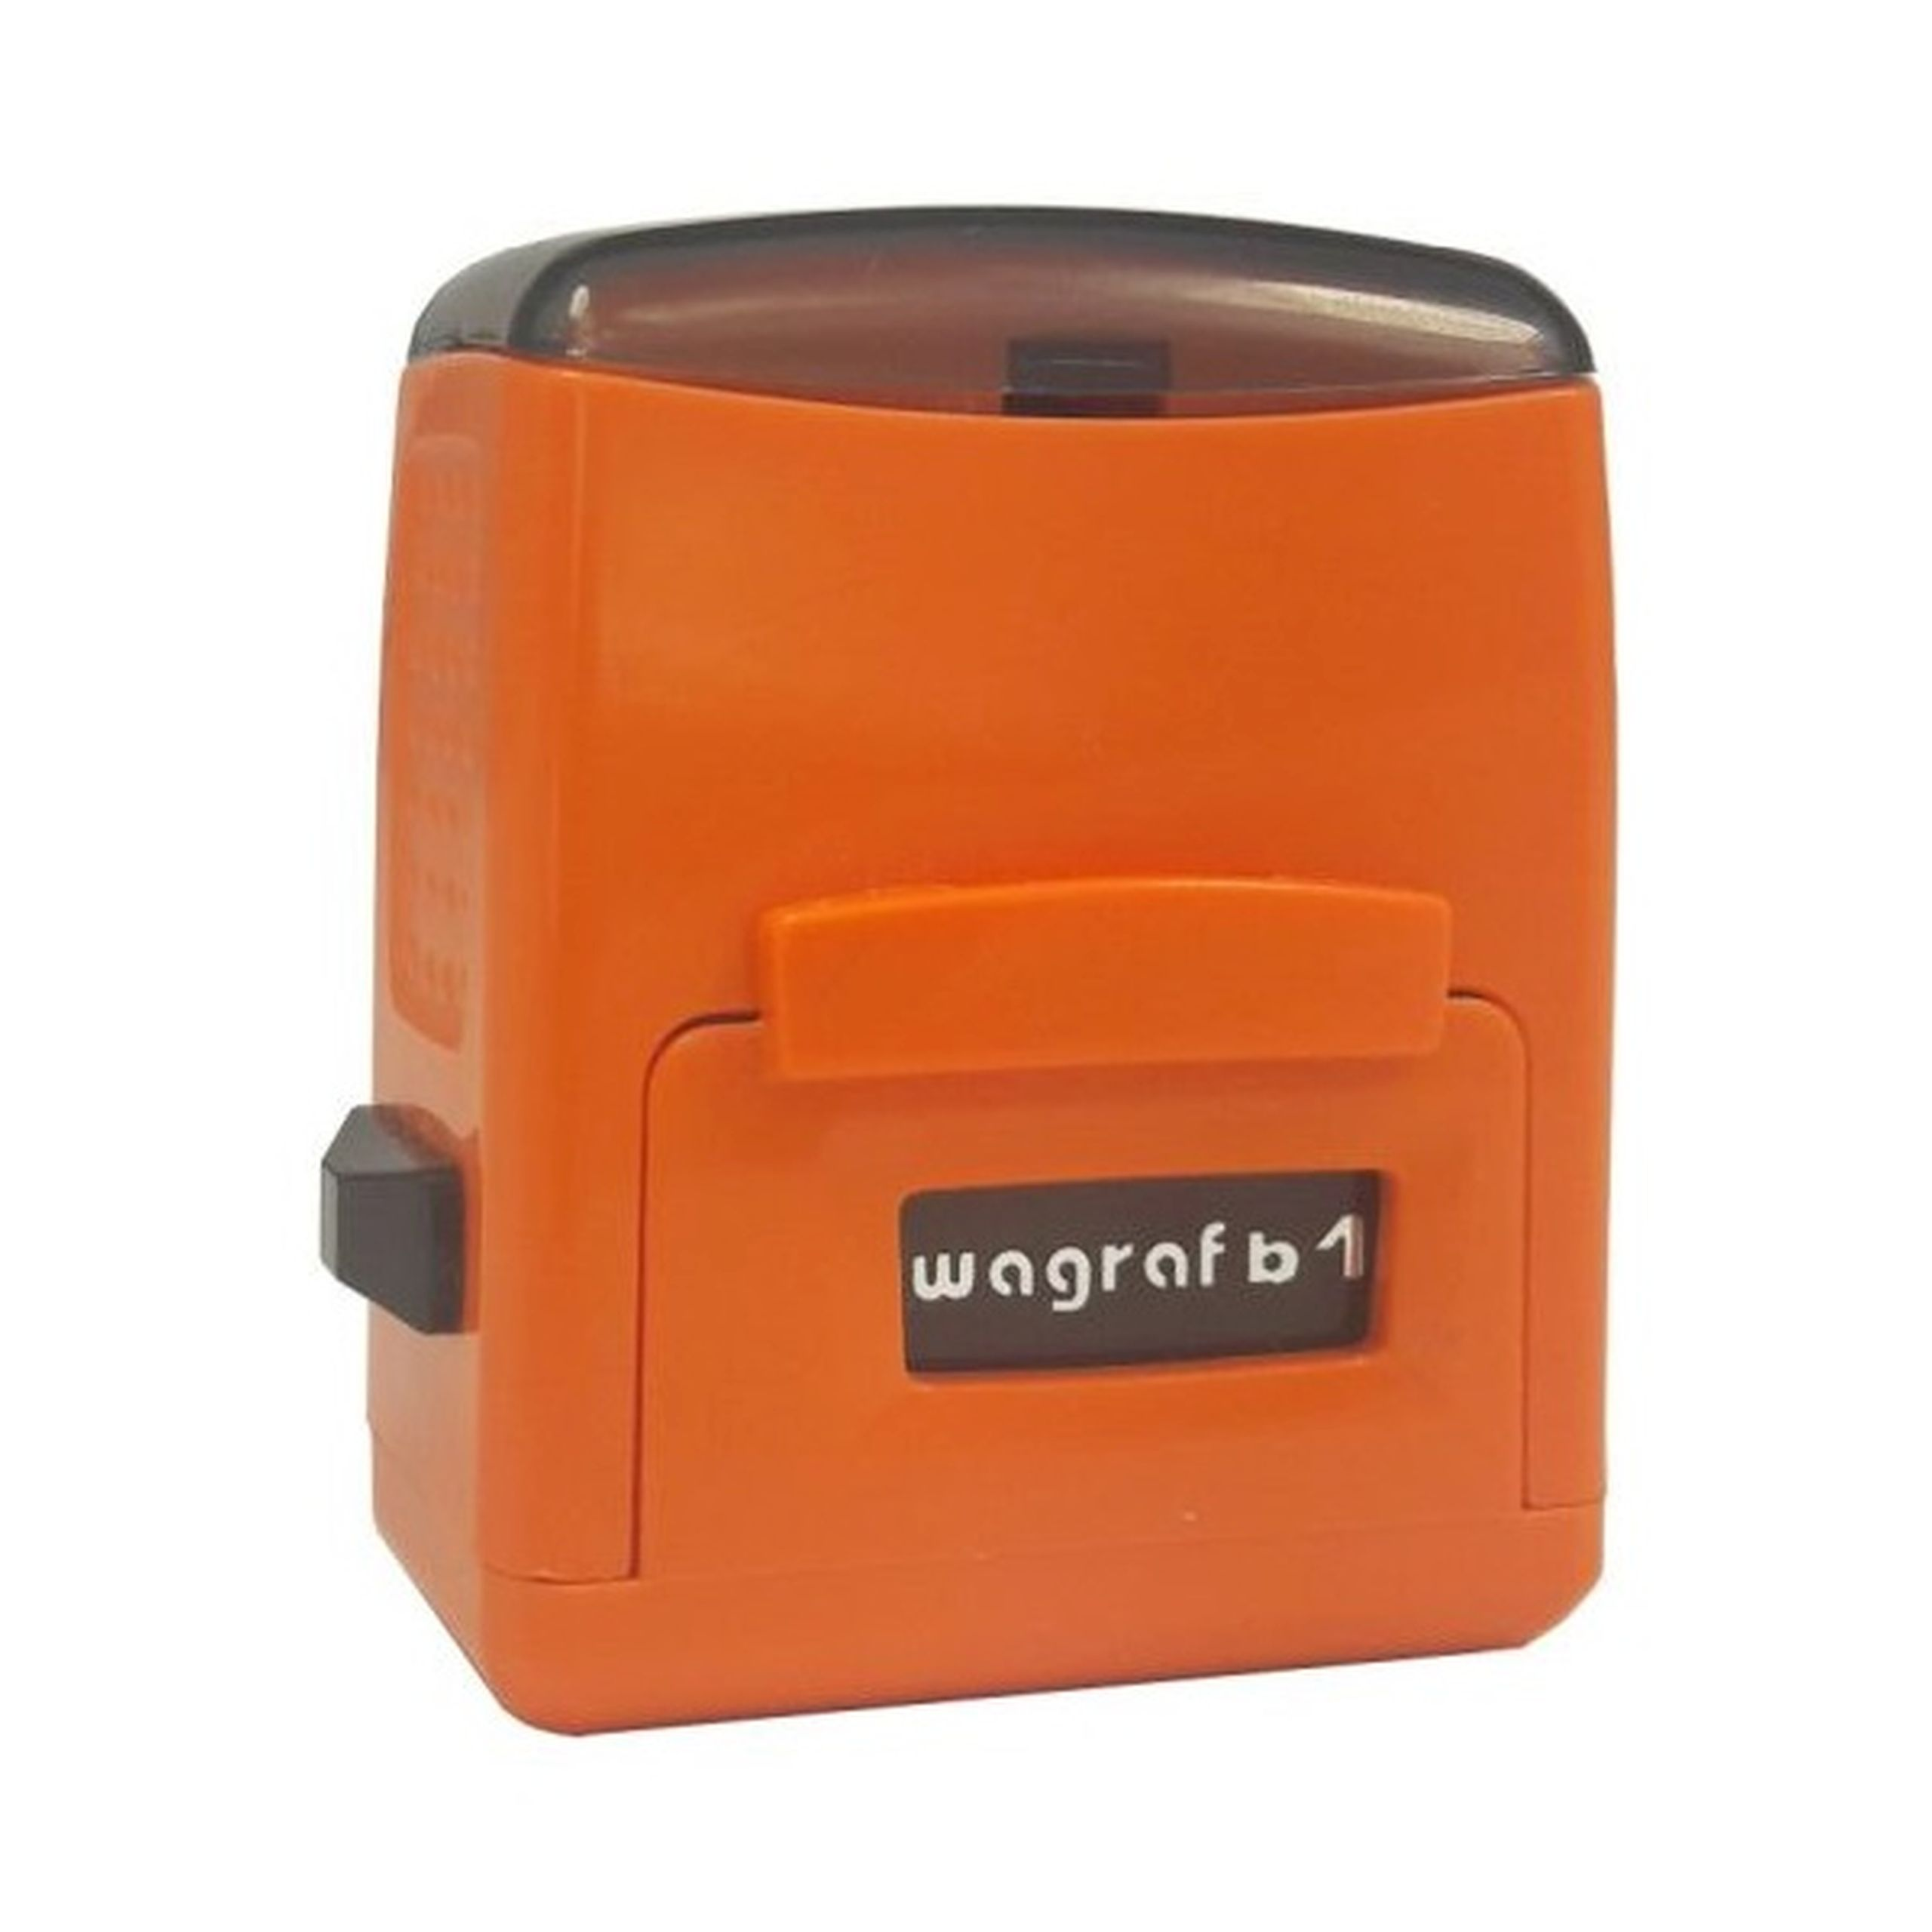 Item Stamp with gum Wagraf b 1s 1 - 2 lines lines